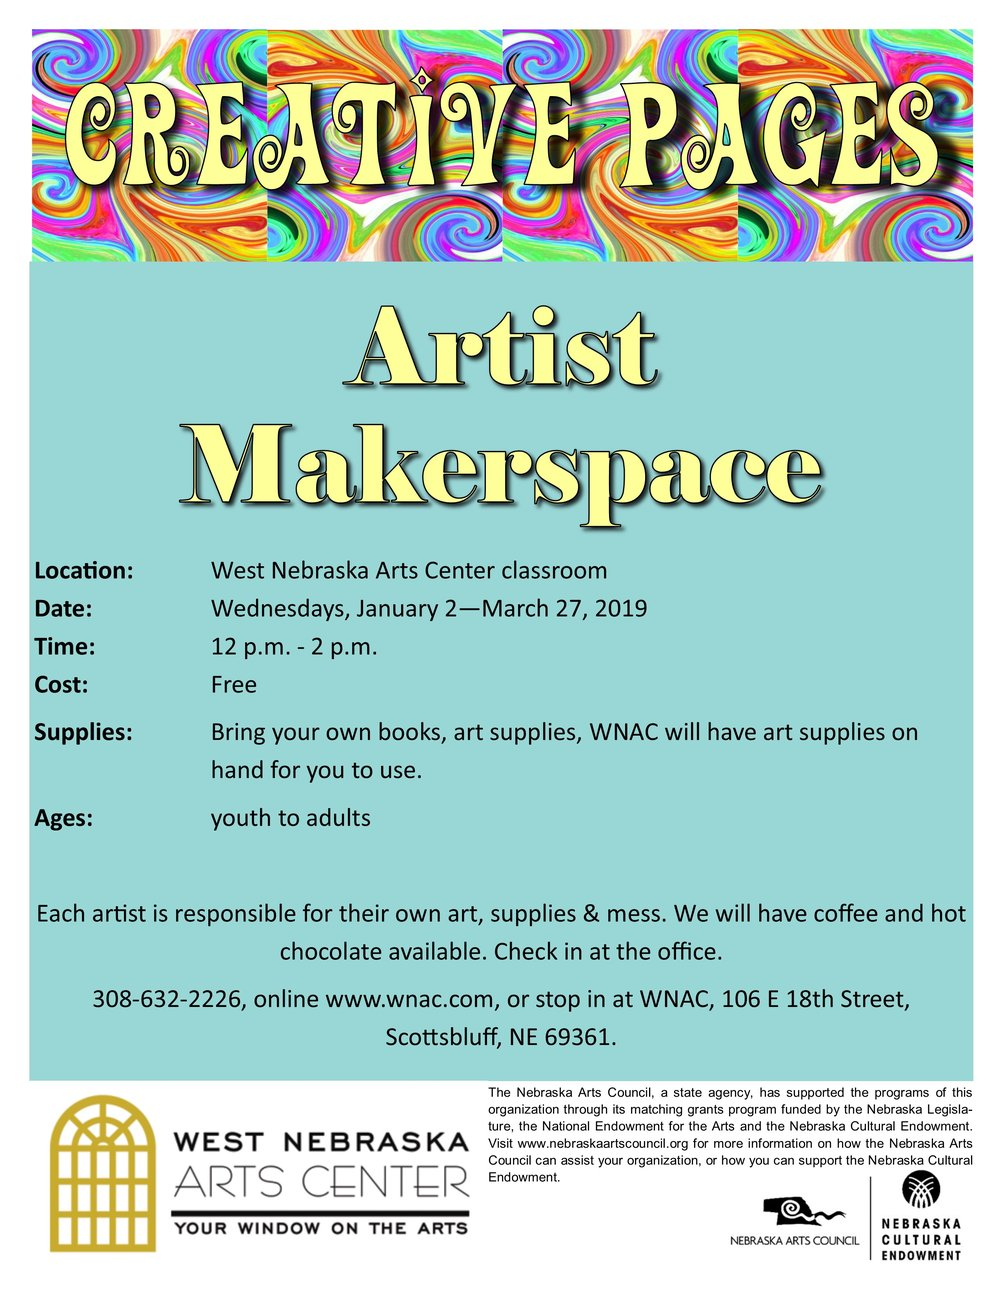 2019 - Creative Pages Artist Makerspace - flyer.jpg